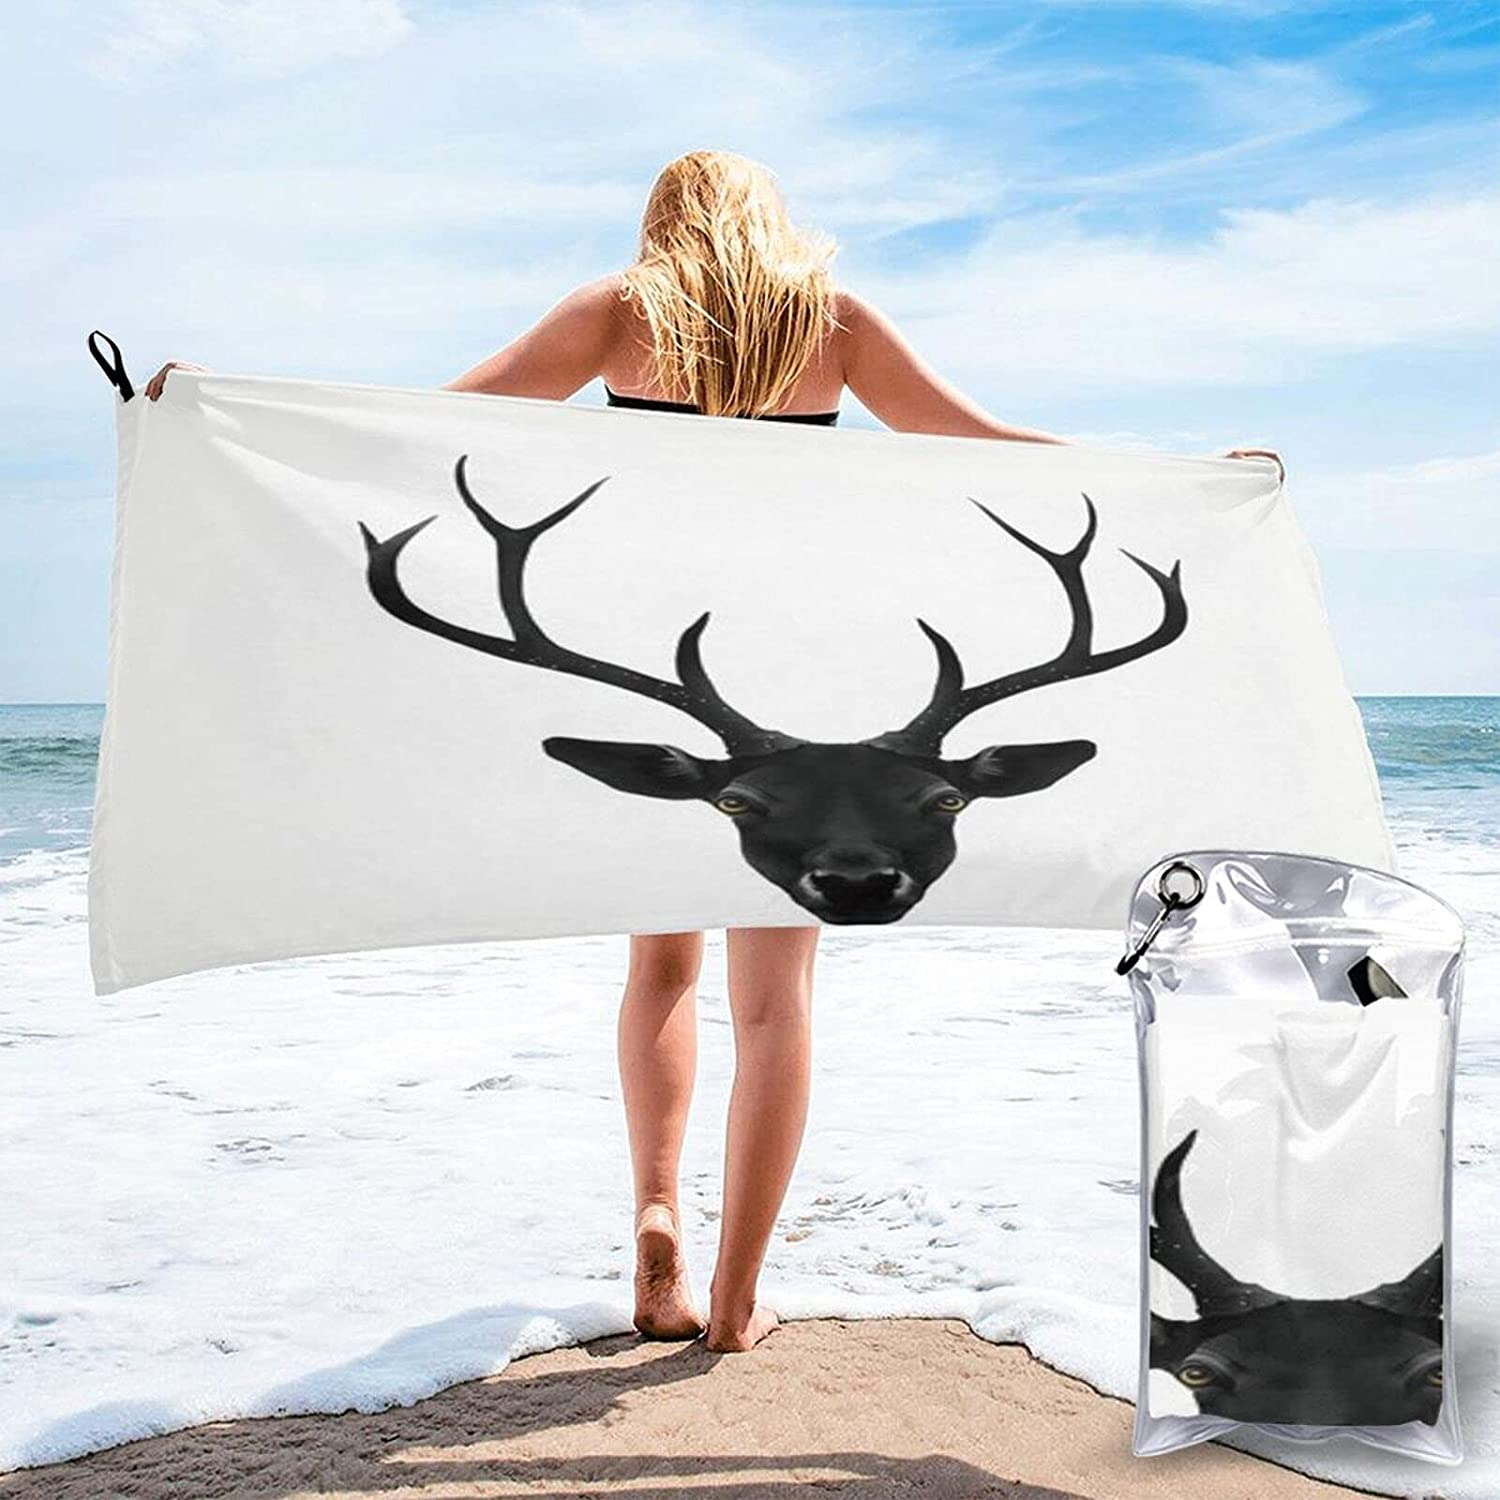 The Black Deer Microfibre Pool Beach Lig Travel Dry Towels Quick OFFicial site Max 77% OFF